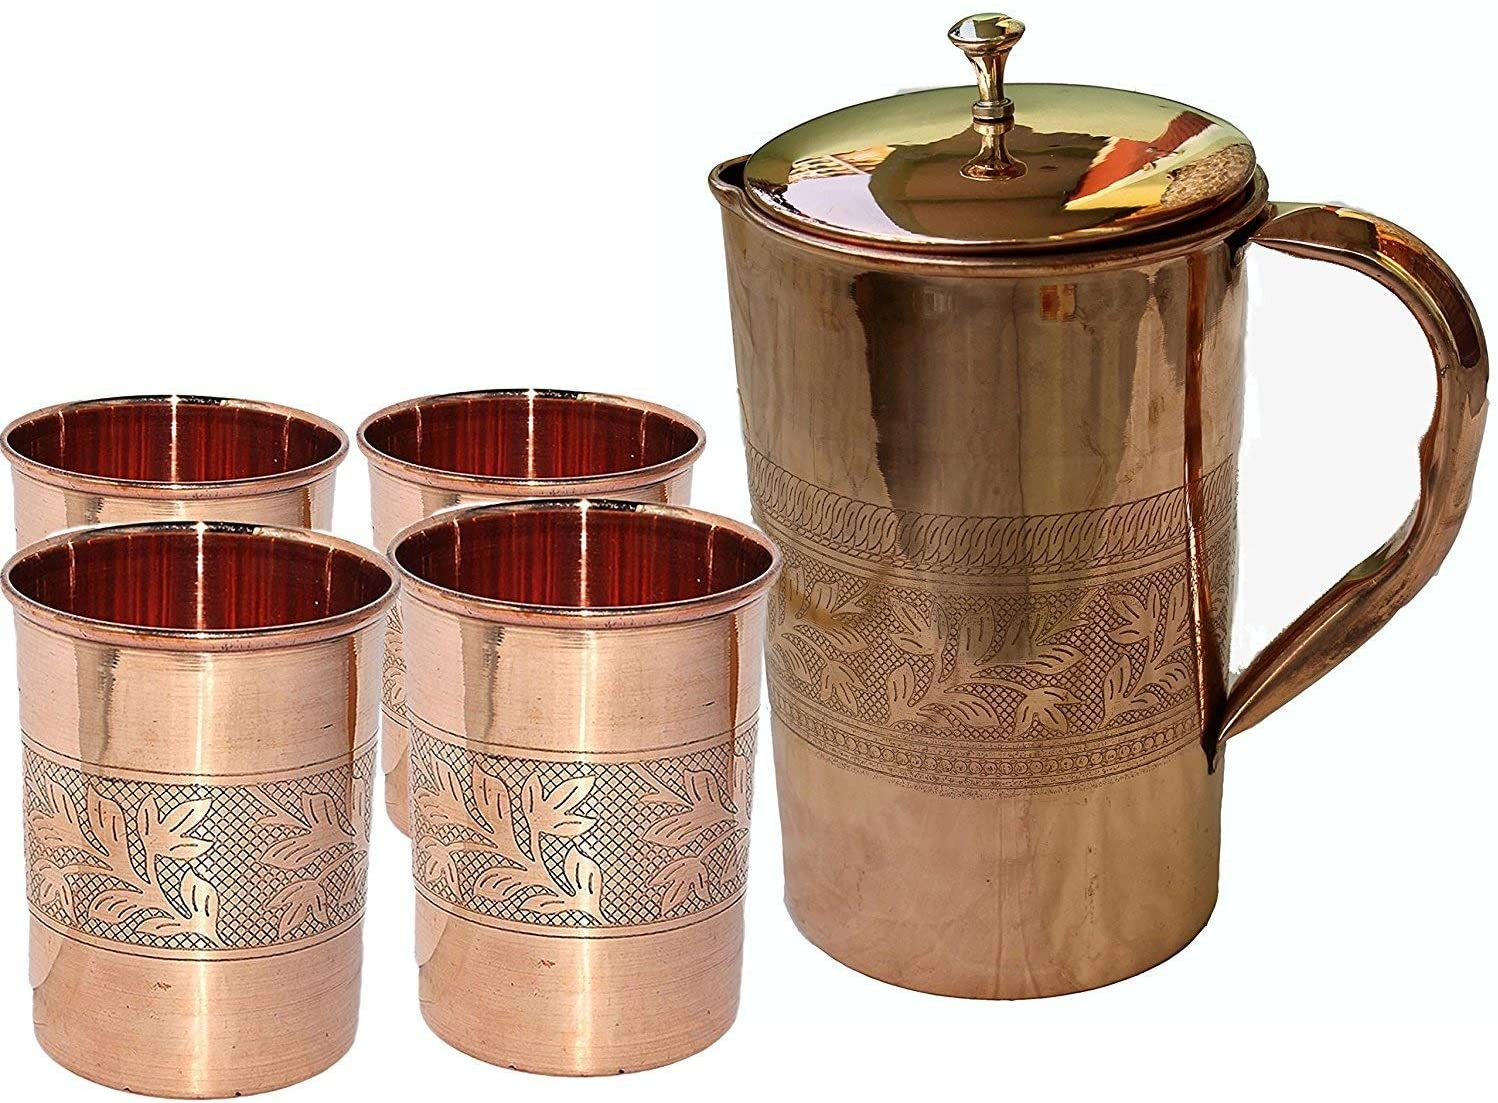 Indian Ayurveda Embossed Finished Copper Water Pitcher Copper 4 Glasses Capacity 10 Ounce with 1 Jugs Capacity 54 Ounce Set for Storing Drinking Water Ayurveda